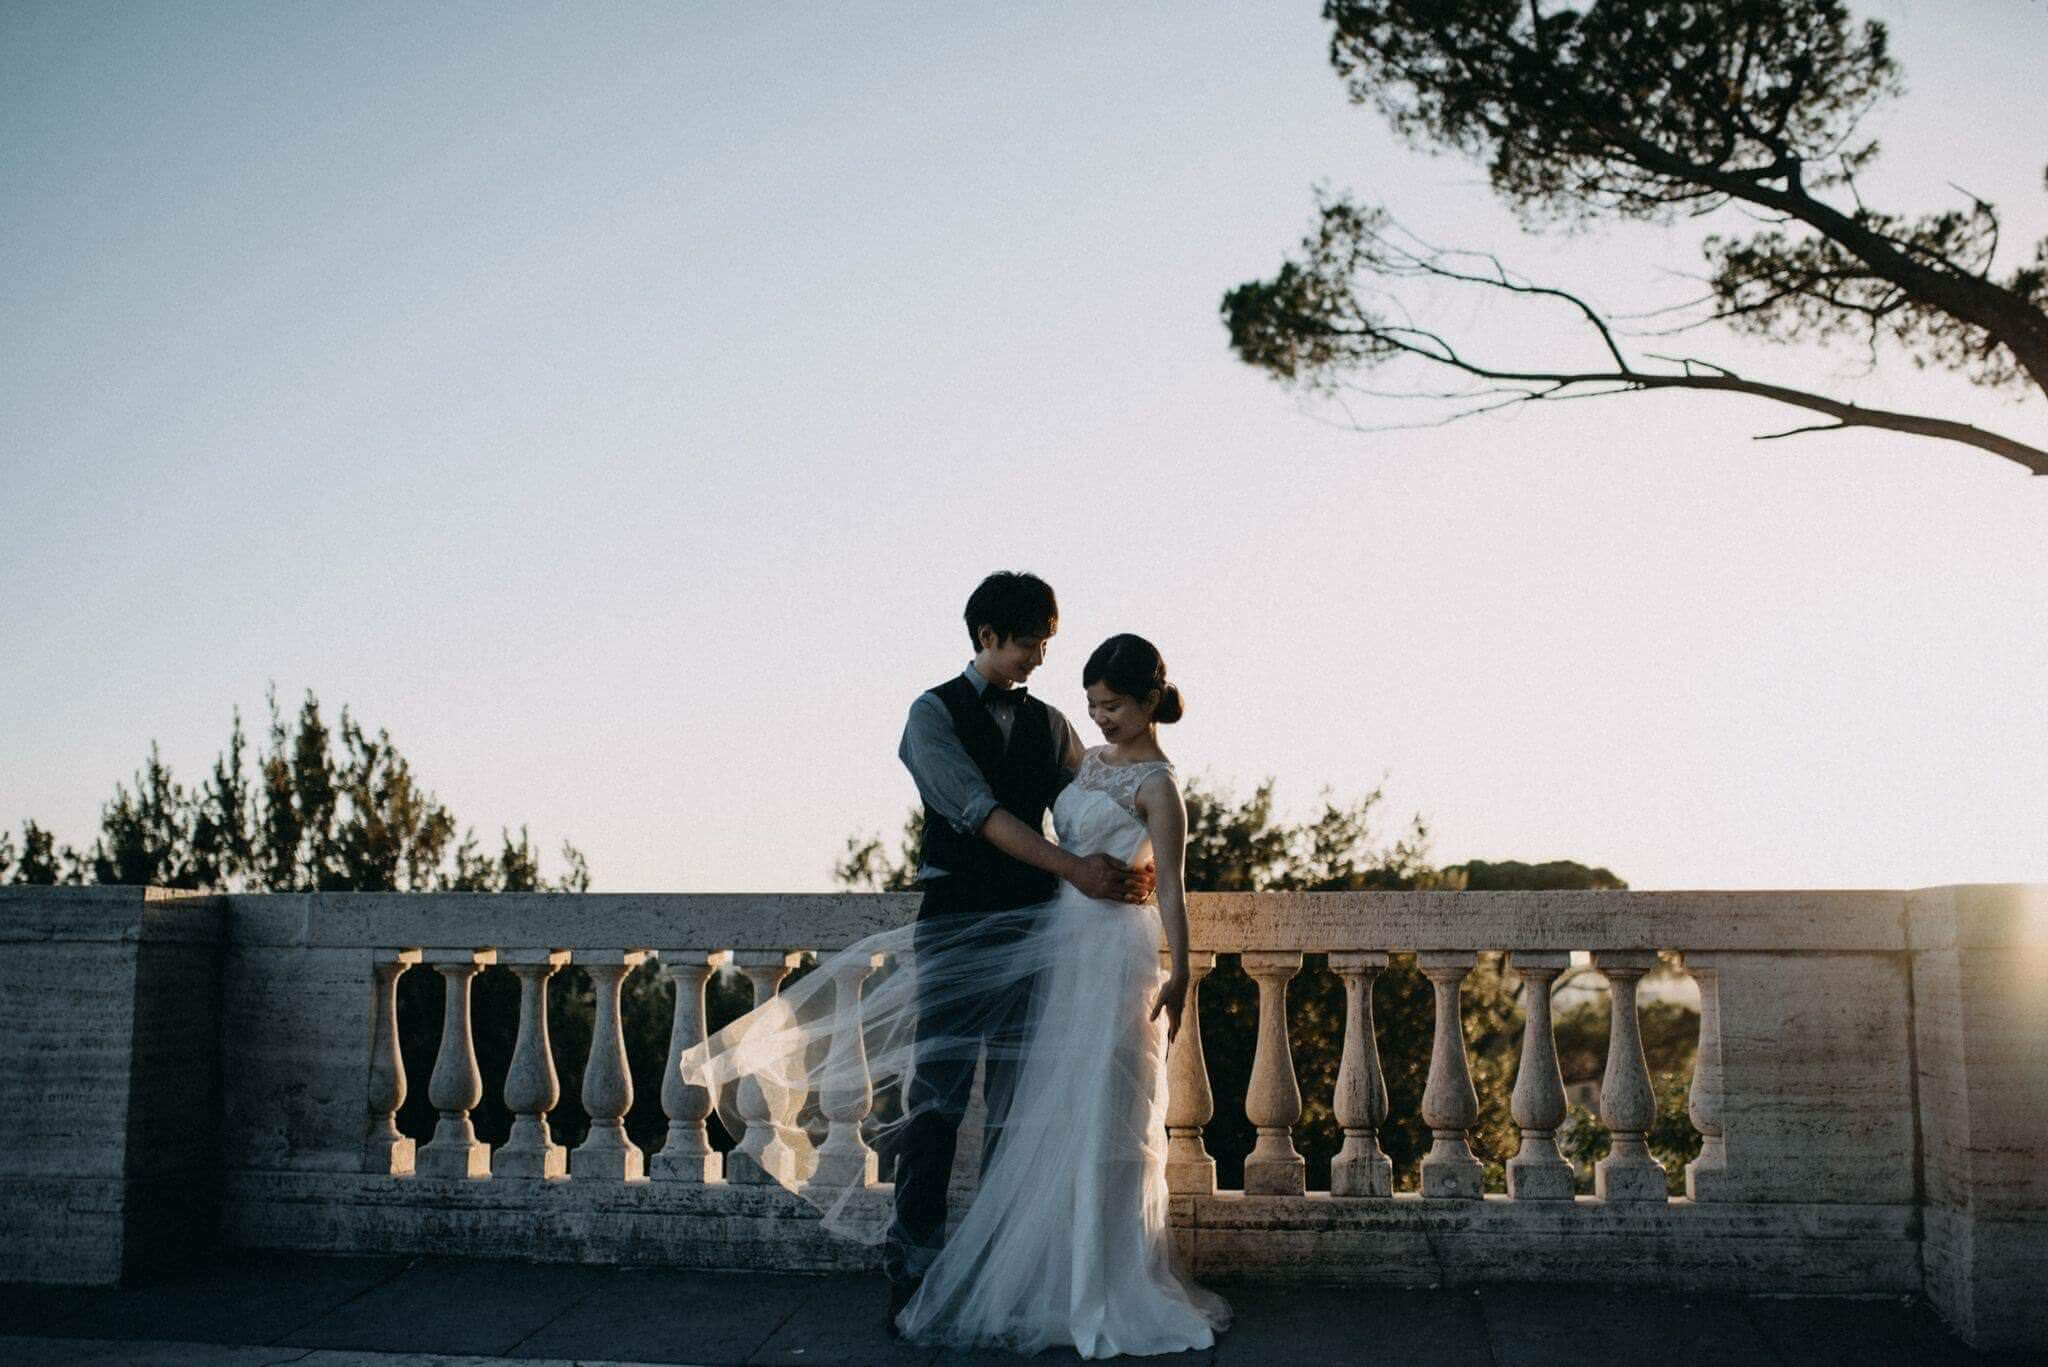 S Photography Rome Italy Destination Wedding and Elopement Photographer